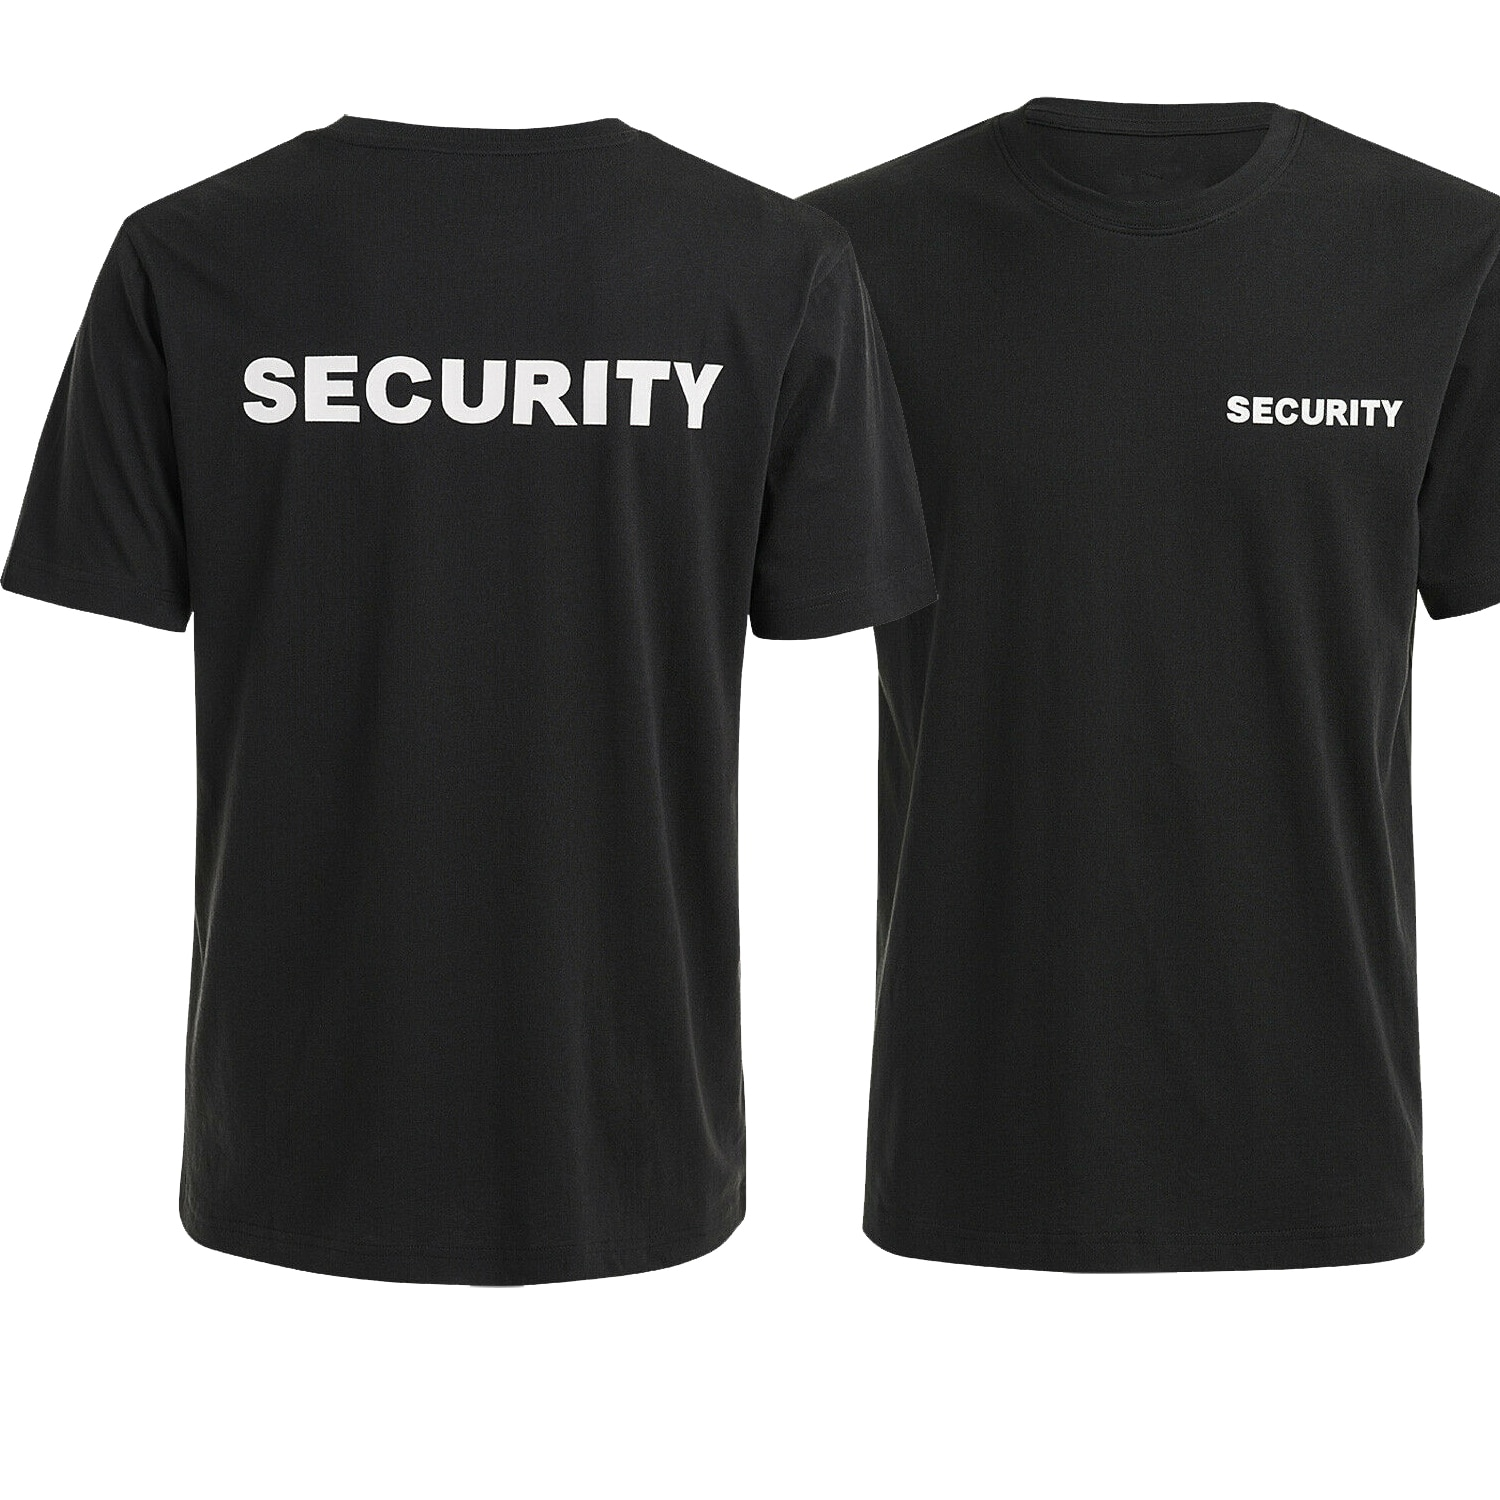 SECURITY T-Shirt Double Sided Printing Cotton O-Neck Short Sleeve Unisex T Shirt New Size S-3XL недорого